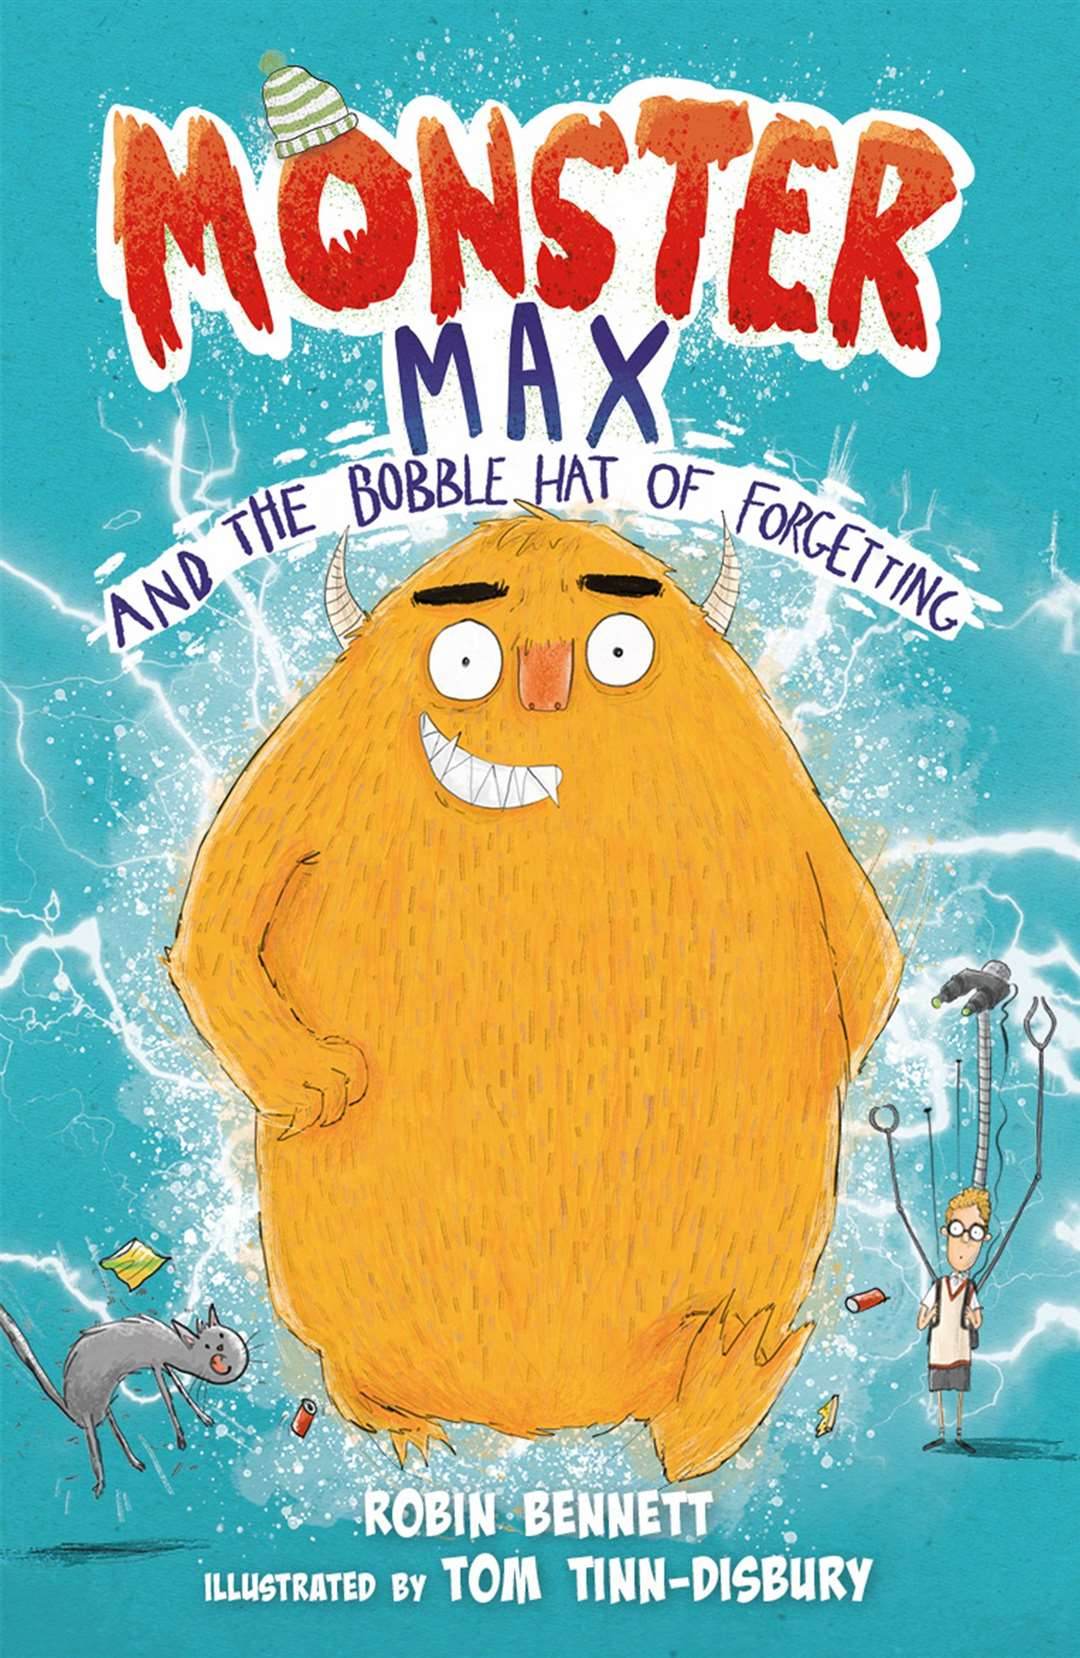 Monster Max and the Bobble Hat of Forgetting by Robin Bennett (43776188)